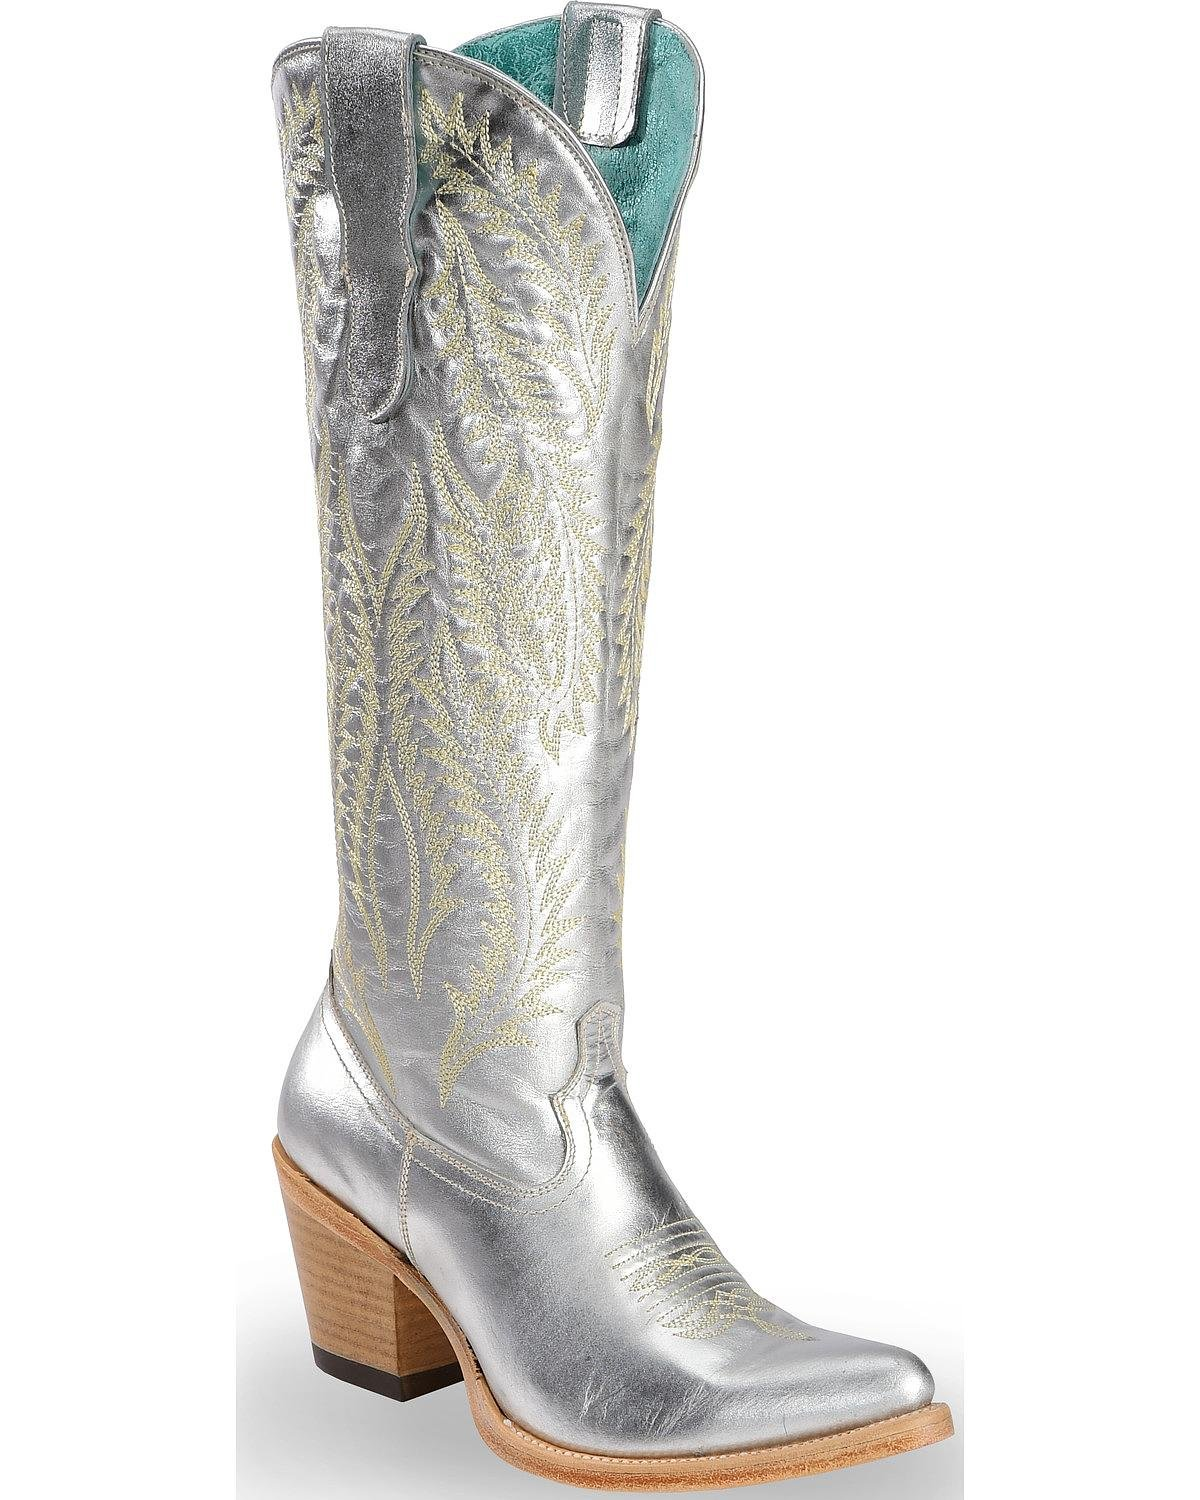 CORRAL Women's Silver Embroidery Tall Top Cowgirl Boot Pointed Toe Silver 7 M